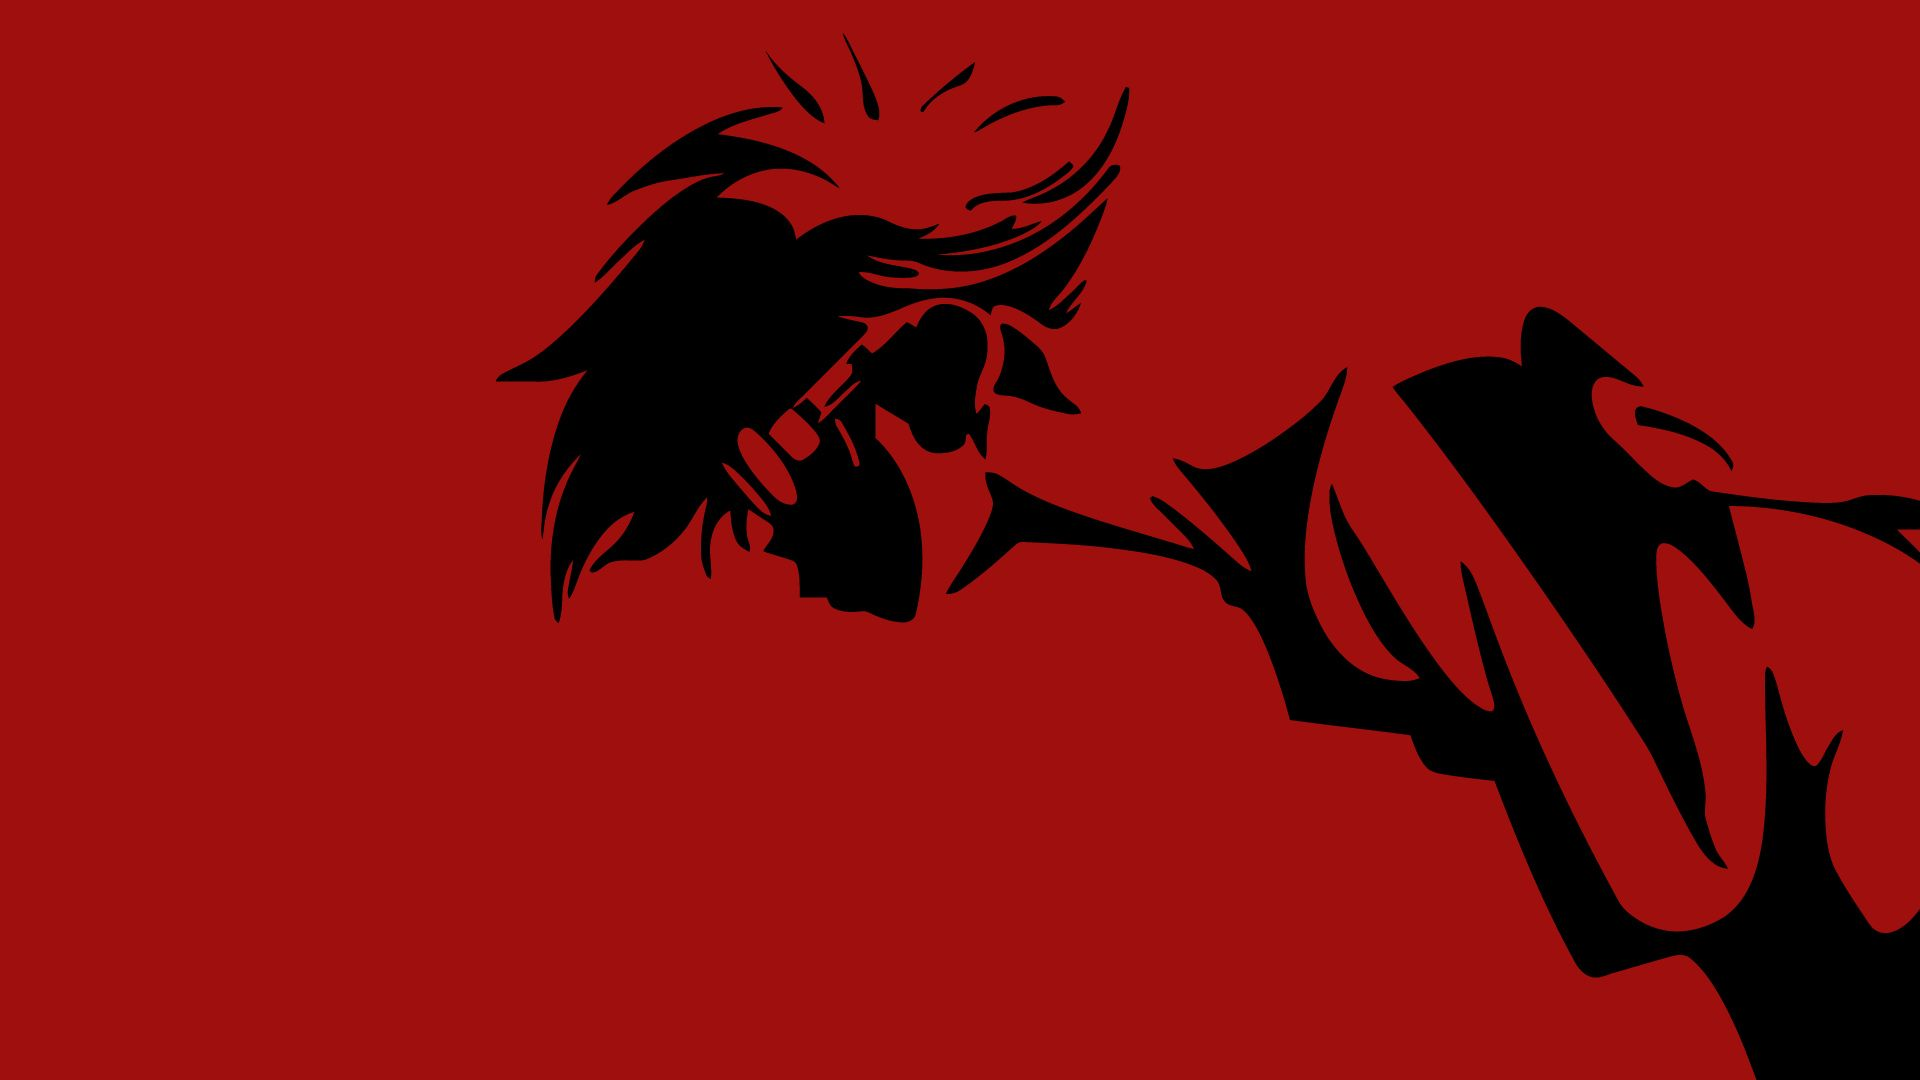 Cowboy Bebop Spike R Wallpapers Cowboy Bebop Wallpapers Cowboy Bebop Cowboy Anime